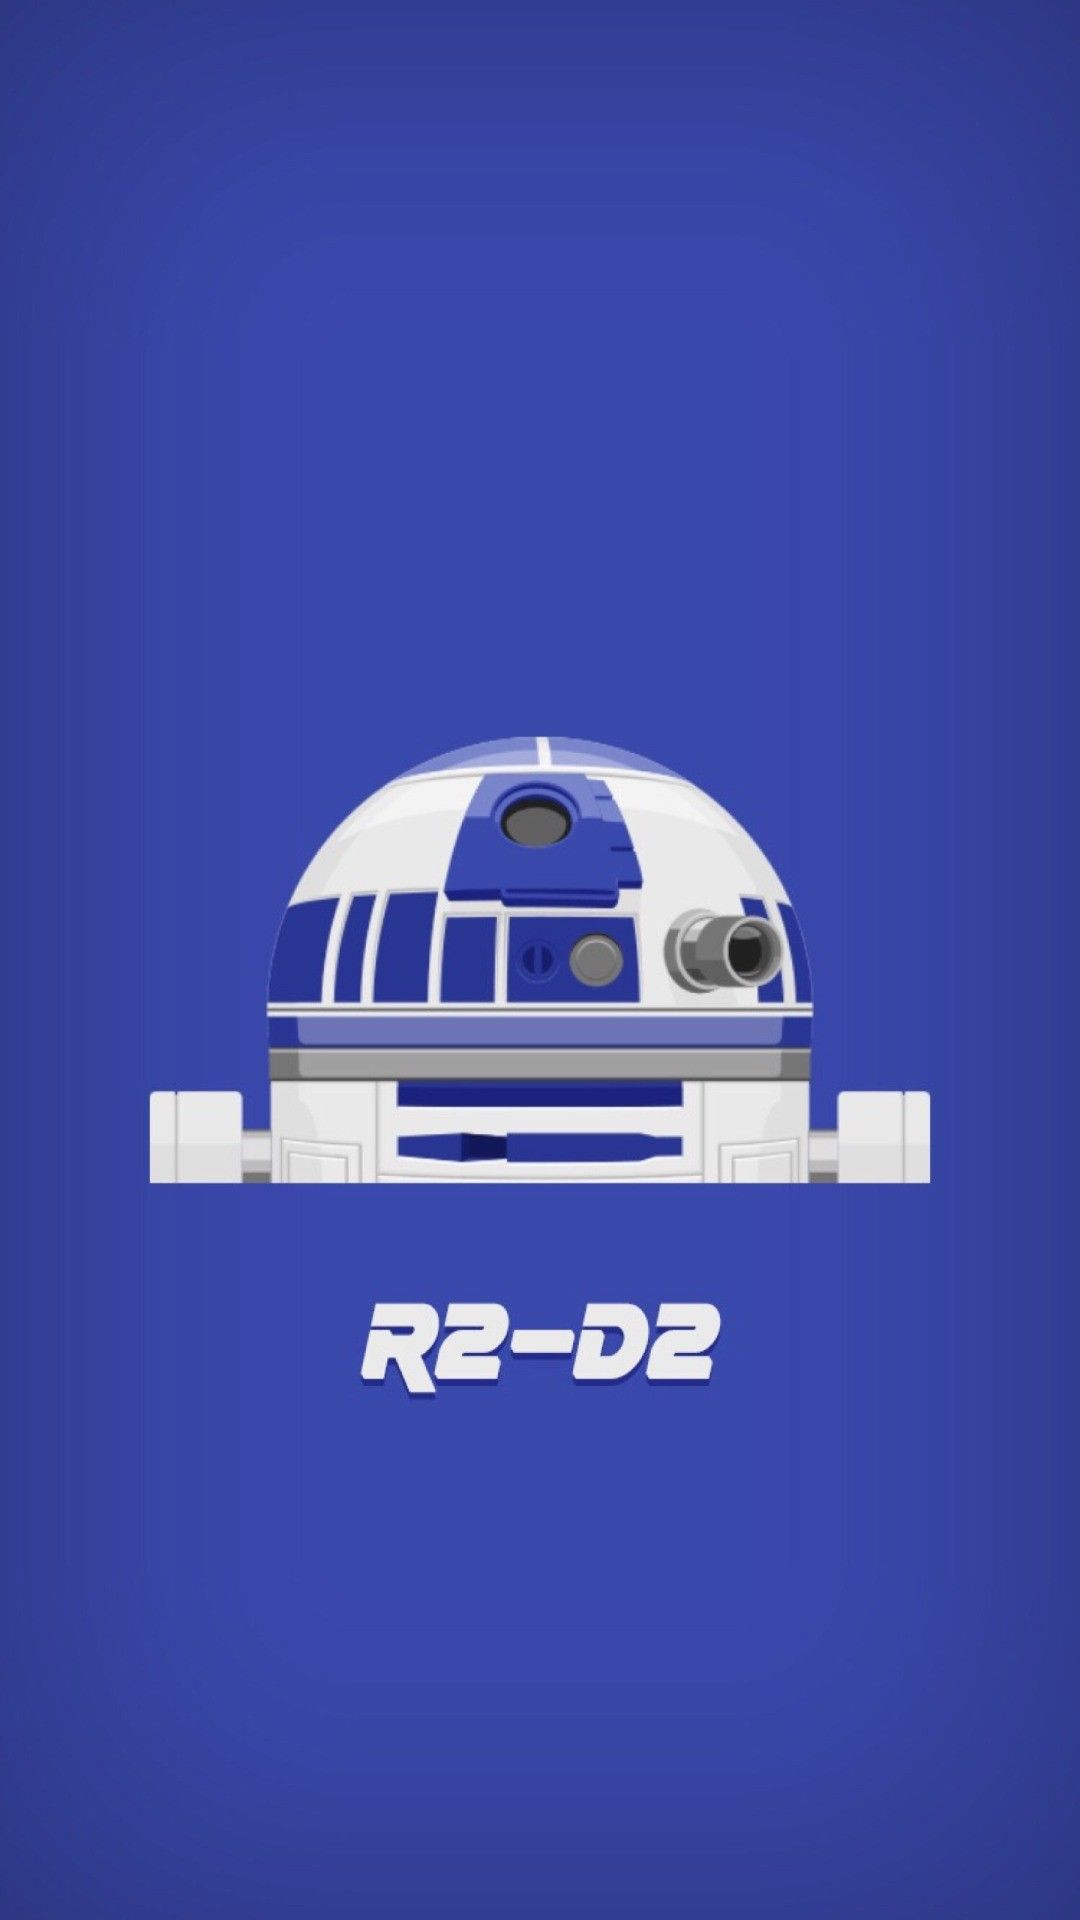 R2d2 Iphone Wallpaper Group 61 Hd Wallpapers